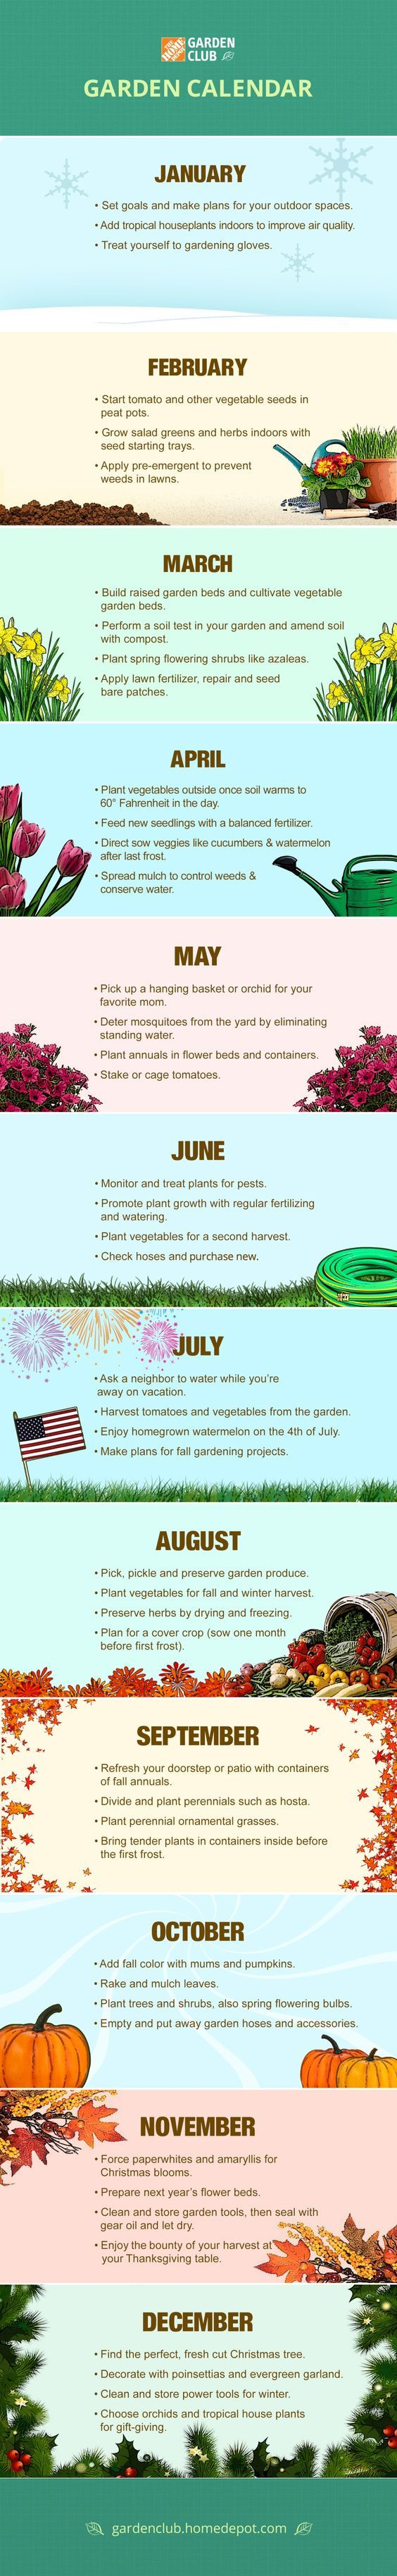 Set your sights on a year of continual gardening delights when you plan according to The Home Depot's Garden Calendar.